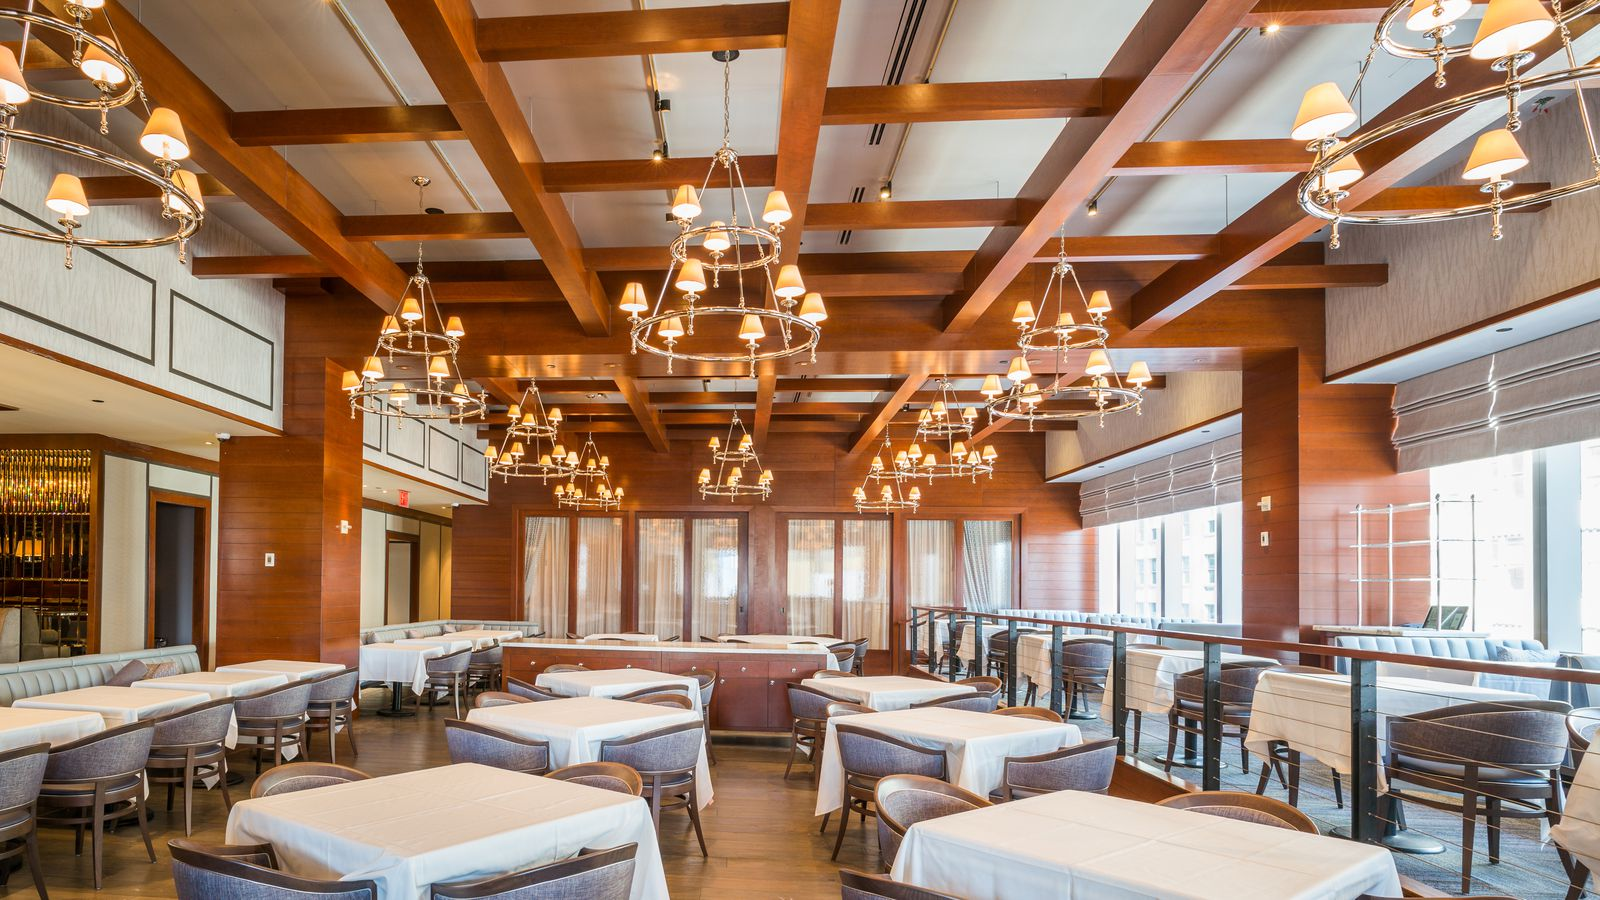 Take a tour of michael lomonaco 39 s freshly revamped porter house bar and grill eater ny - Restaurant bar and grill ...